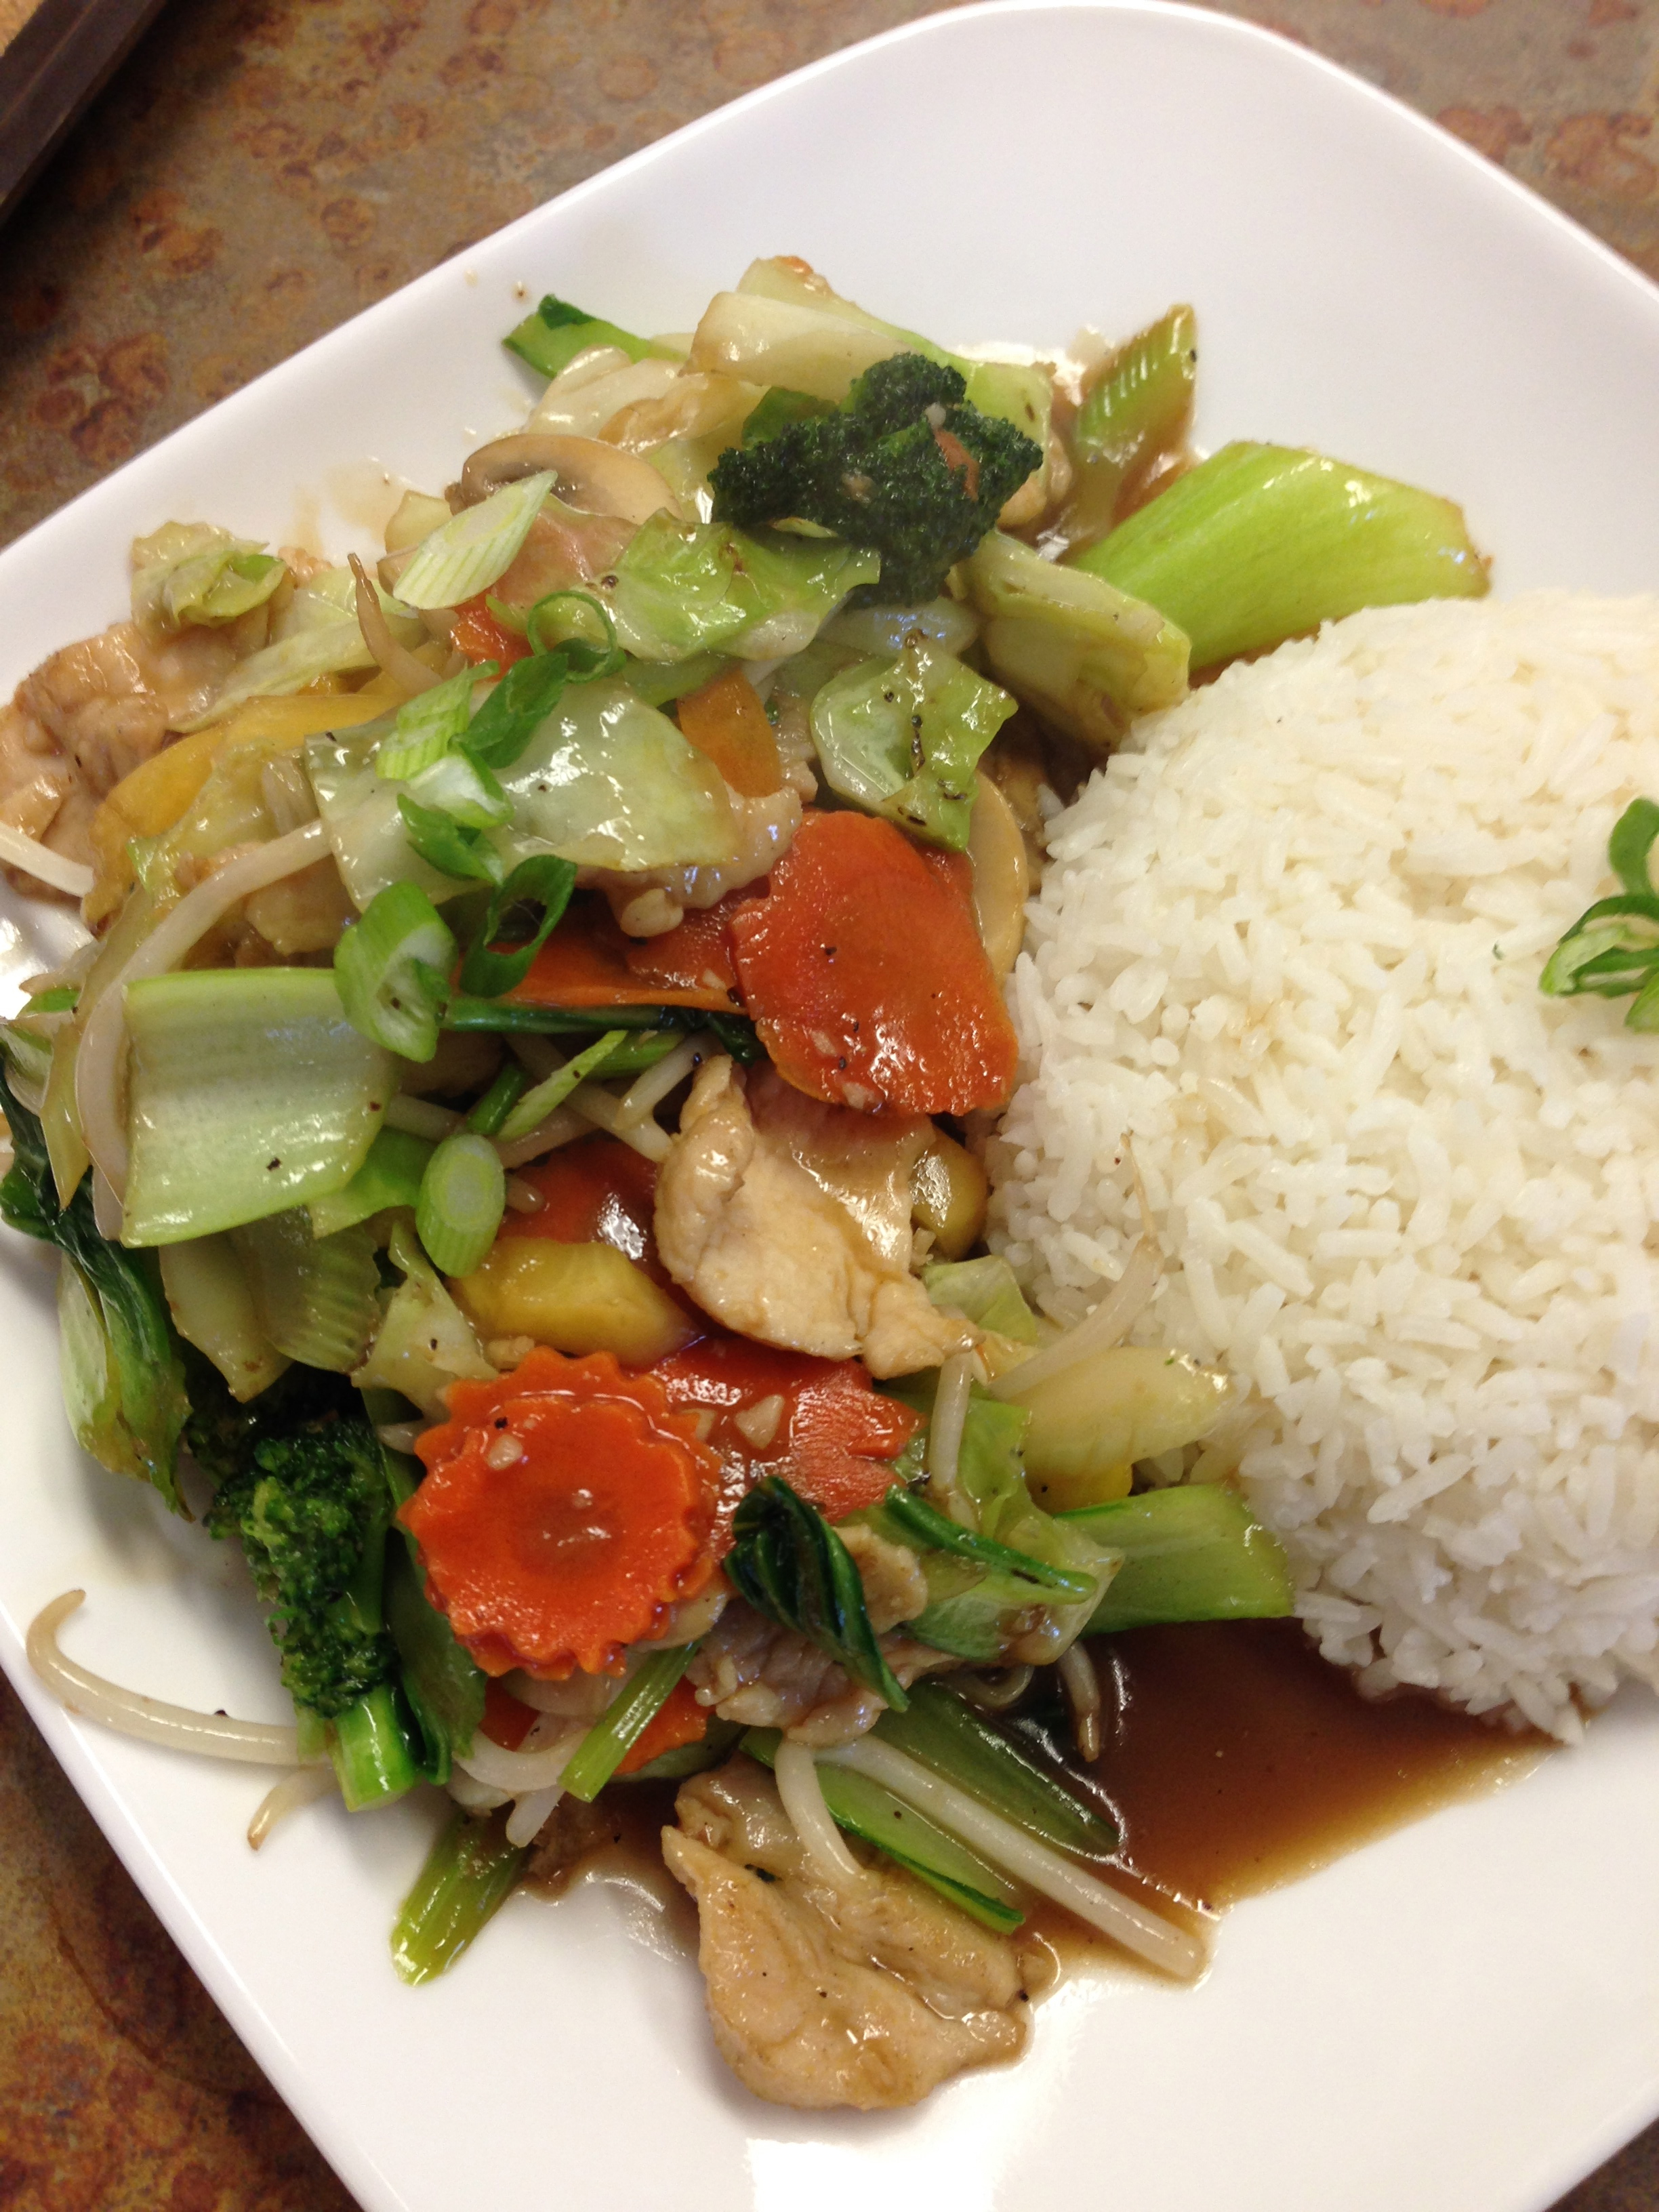 #22 STIR FRIED VEGETABLES Image